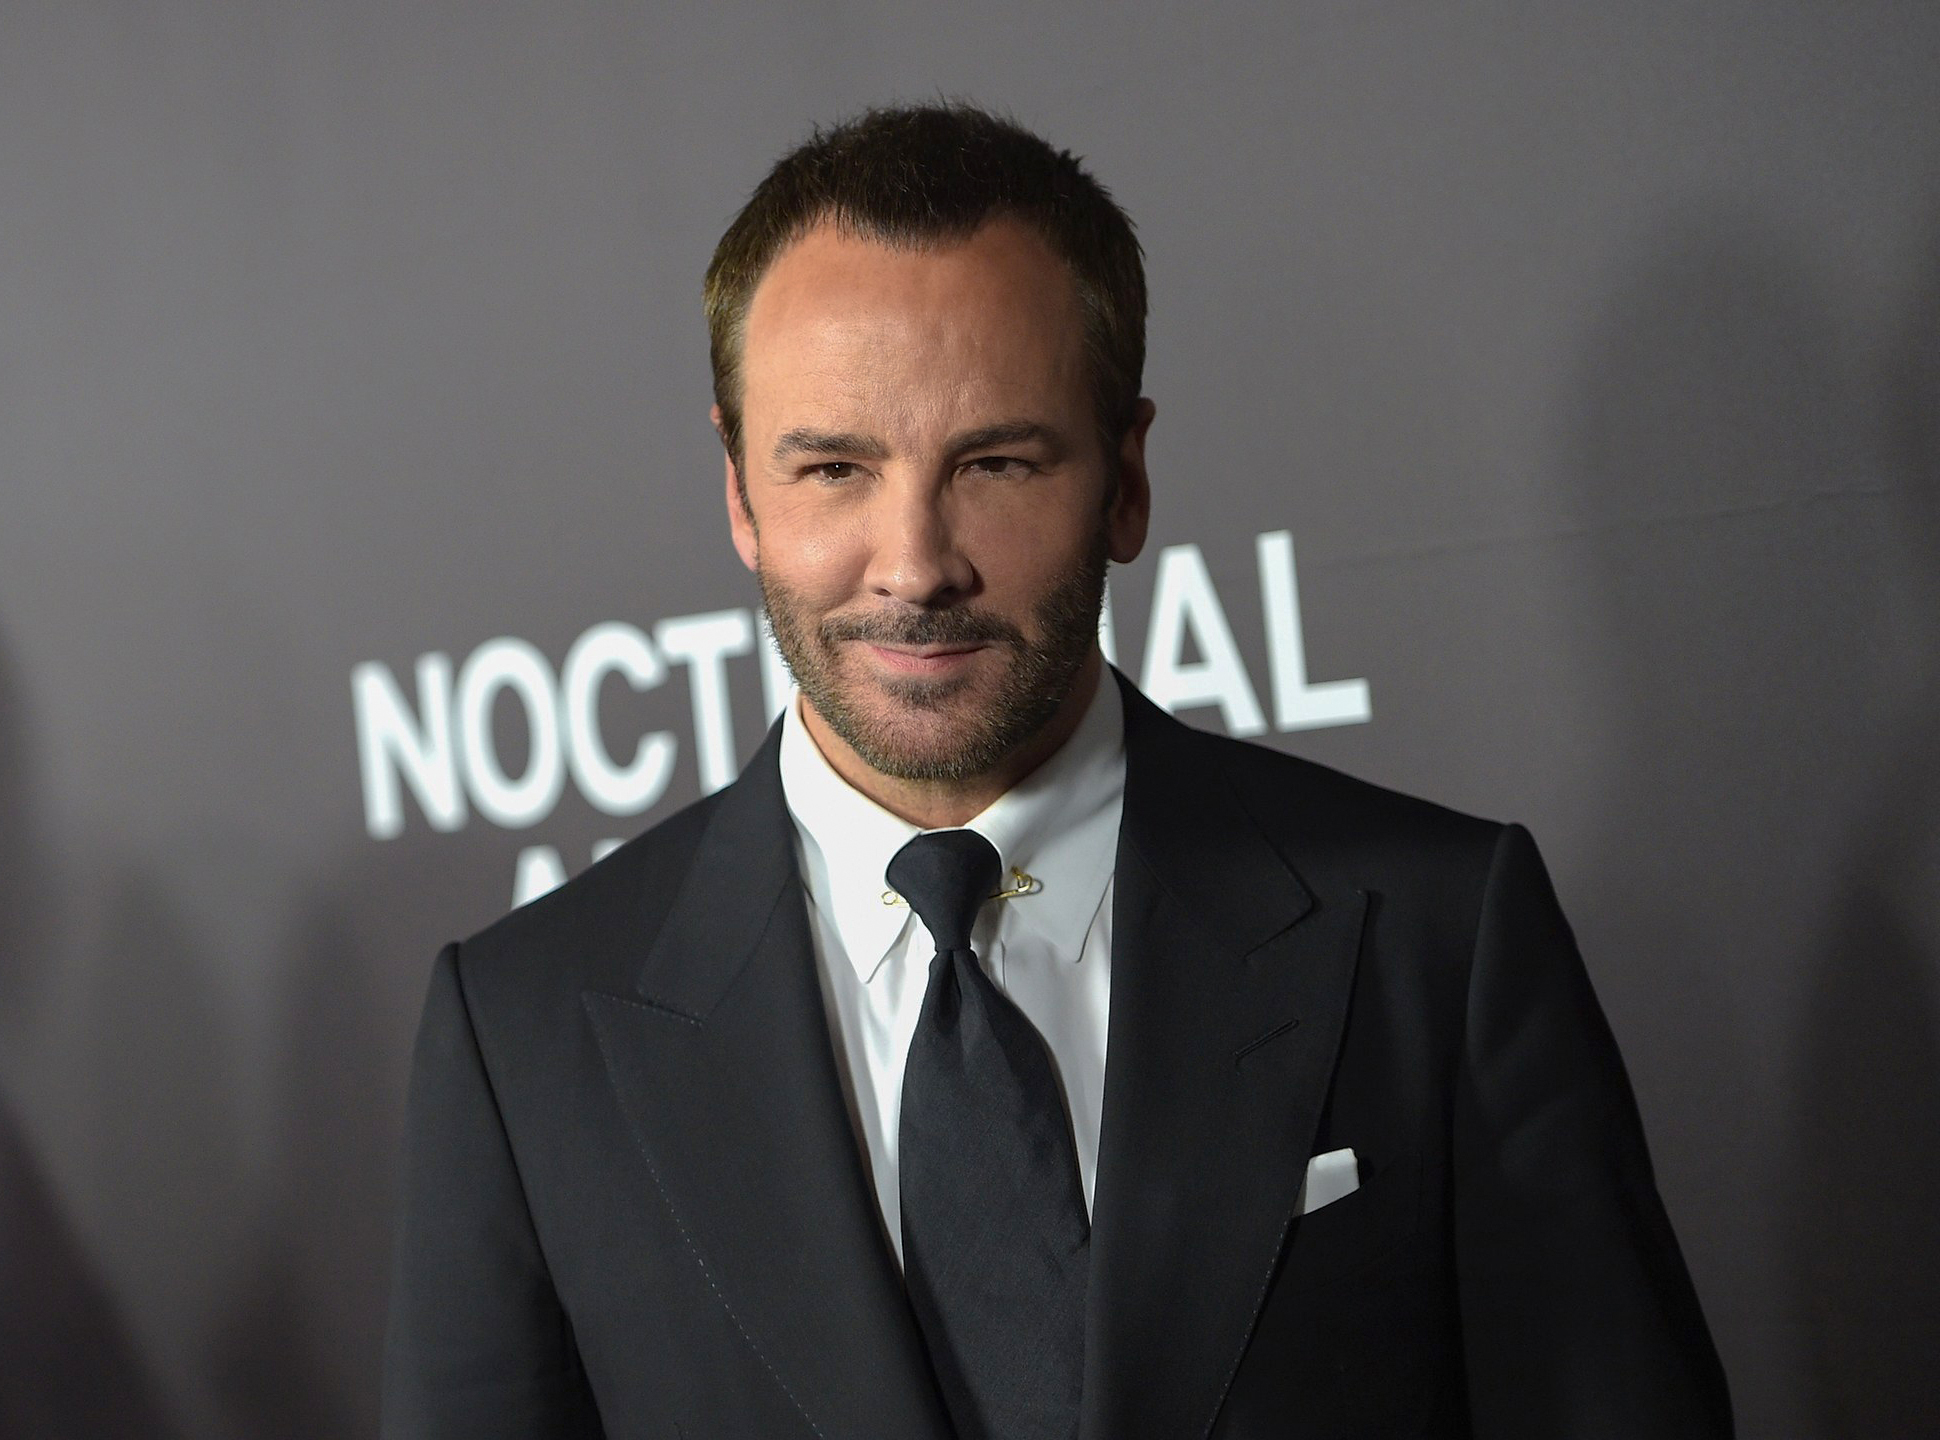 Tom Ford has built one of the top 30 suit brands